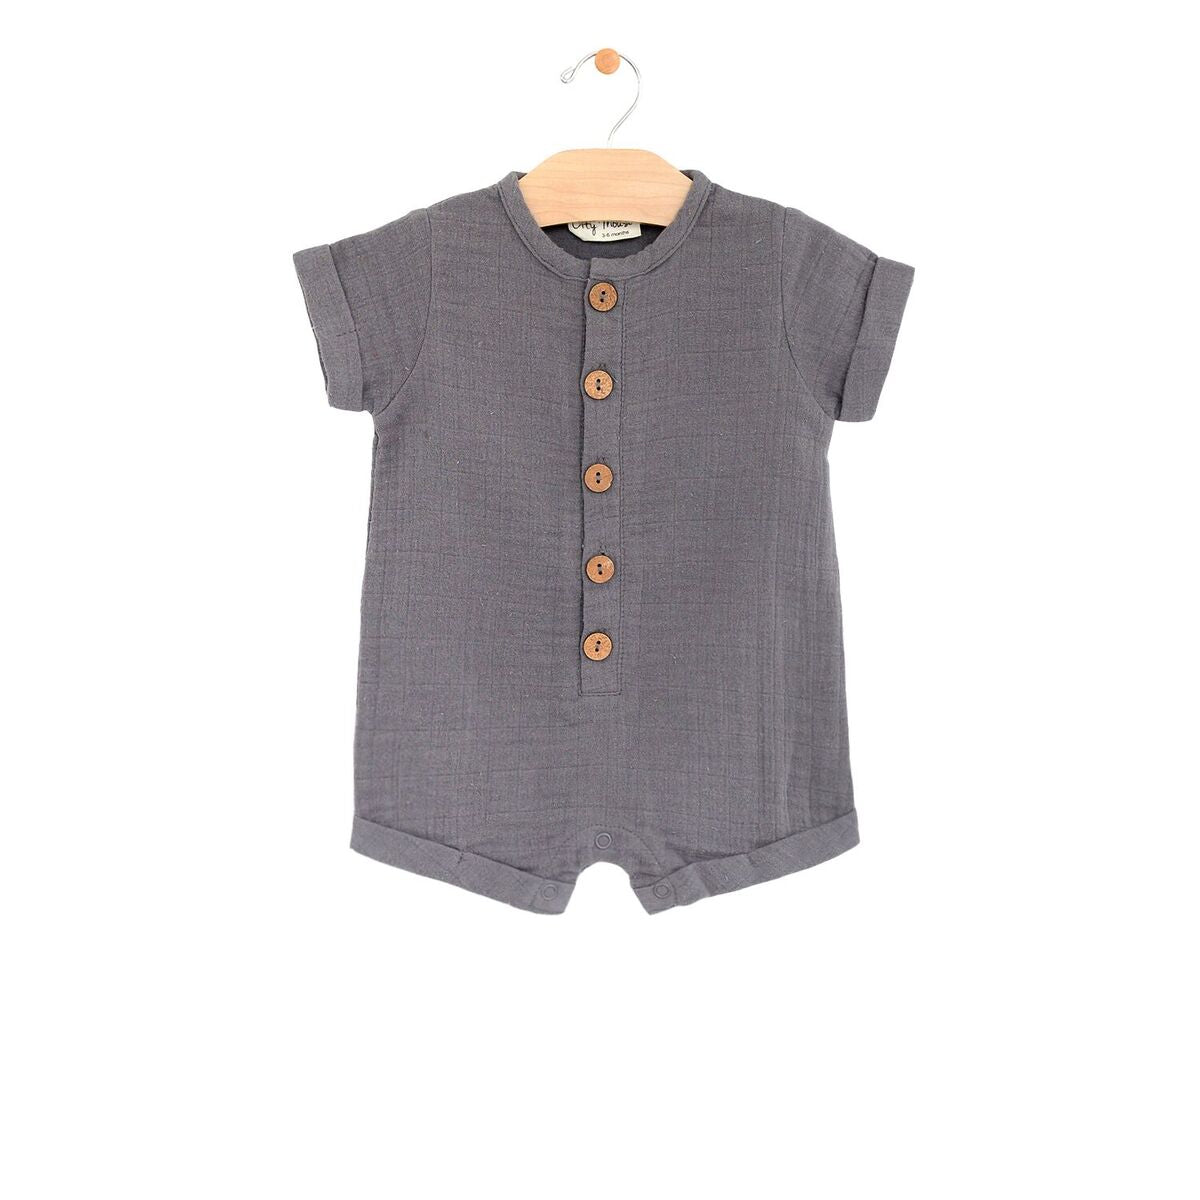 Pewter Muslin Short Button Romper